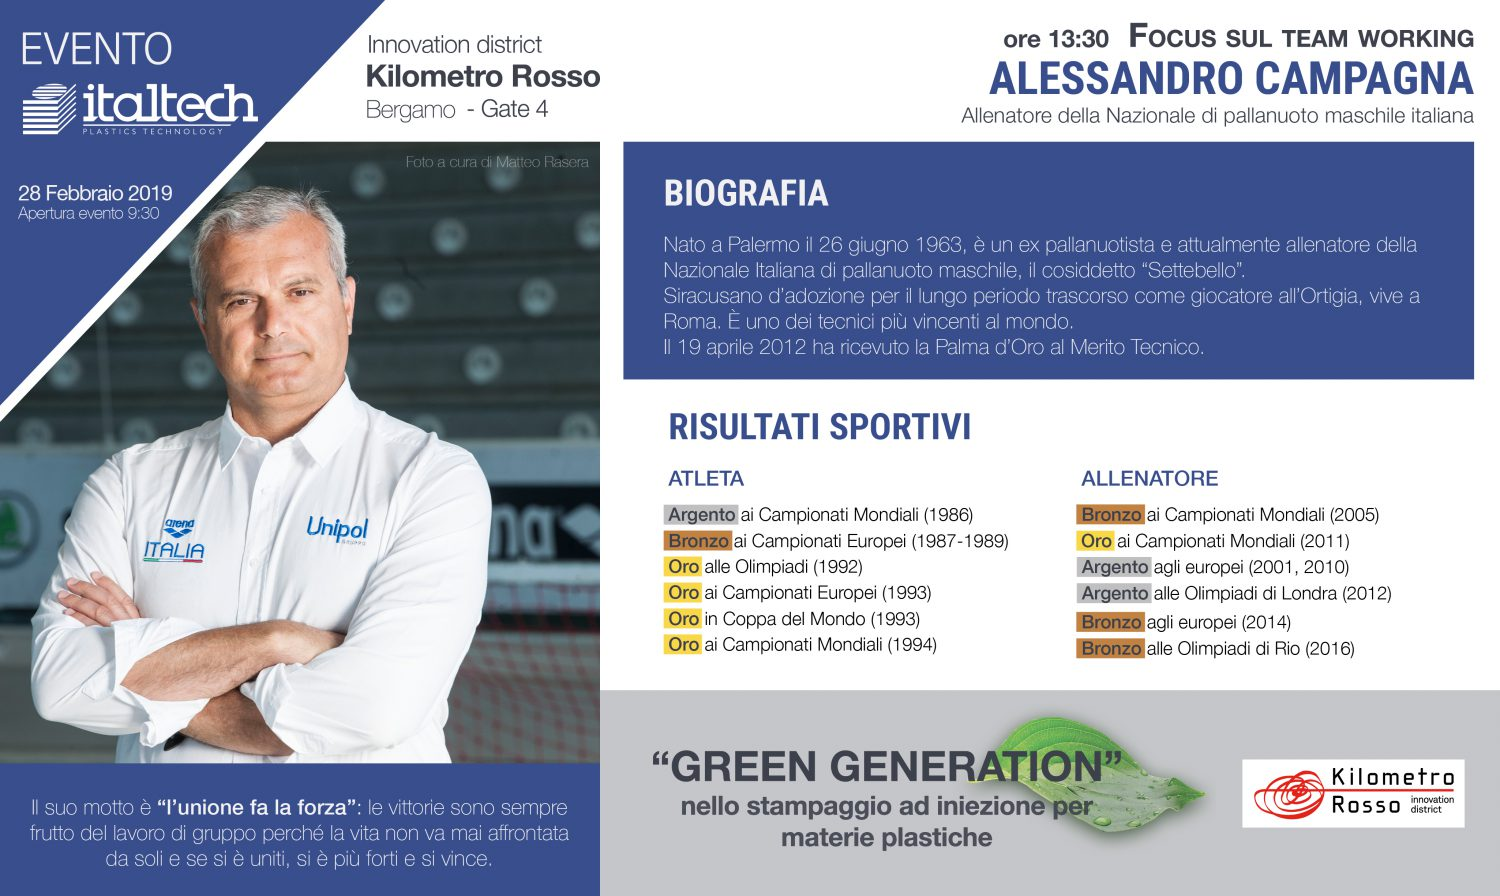 Alessandro Campagna: focus sul team working